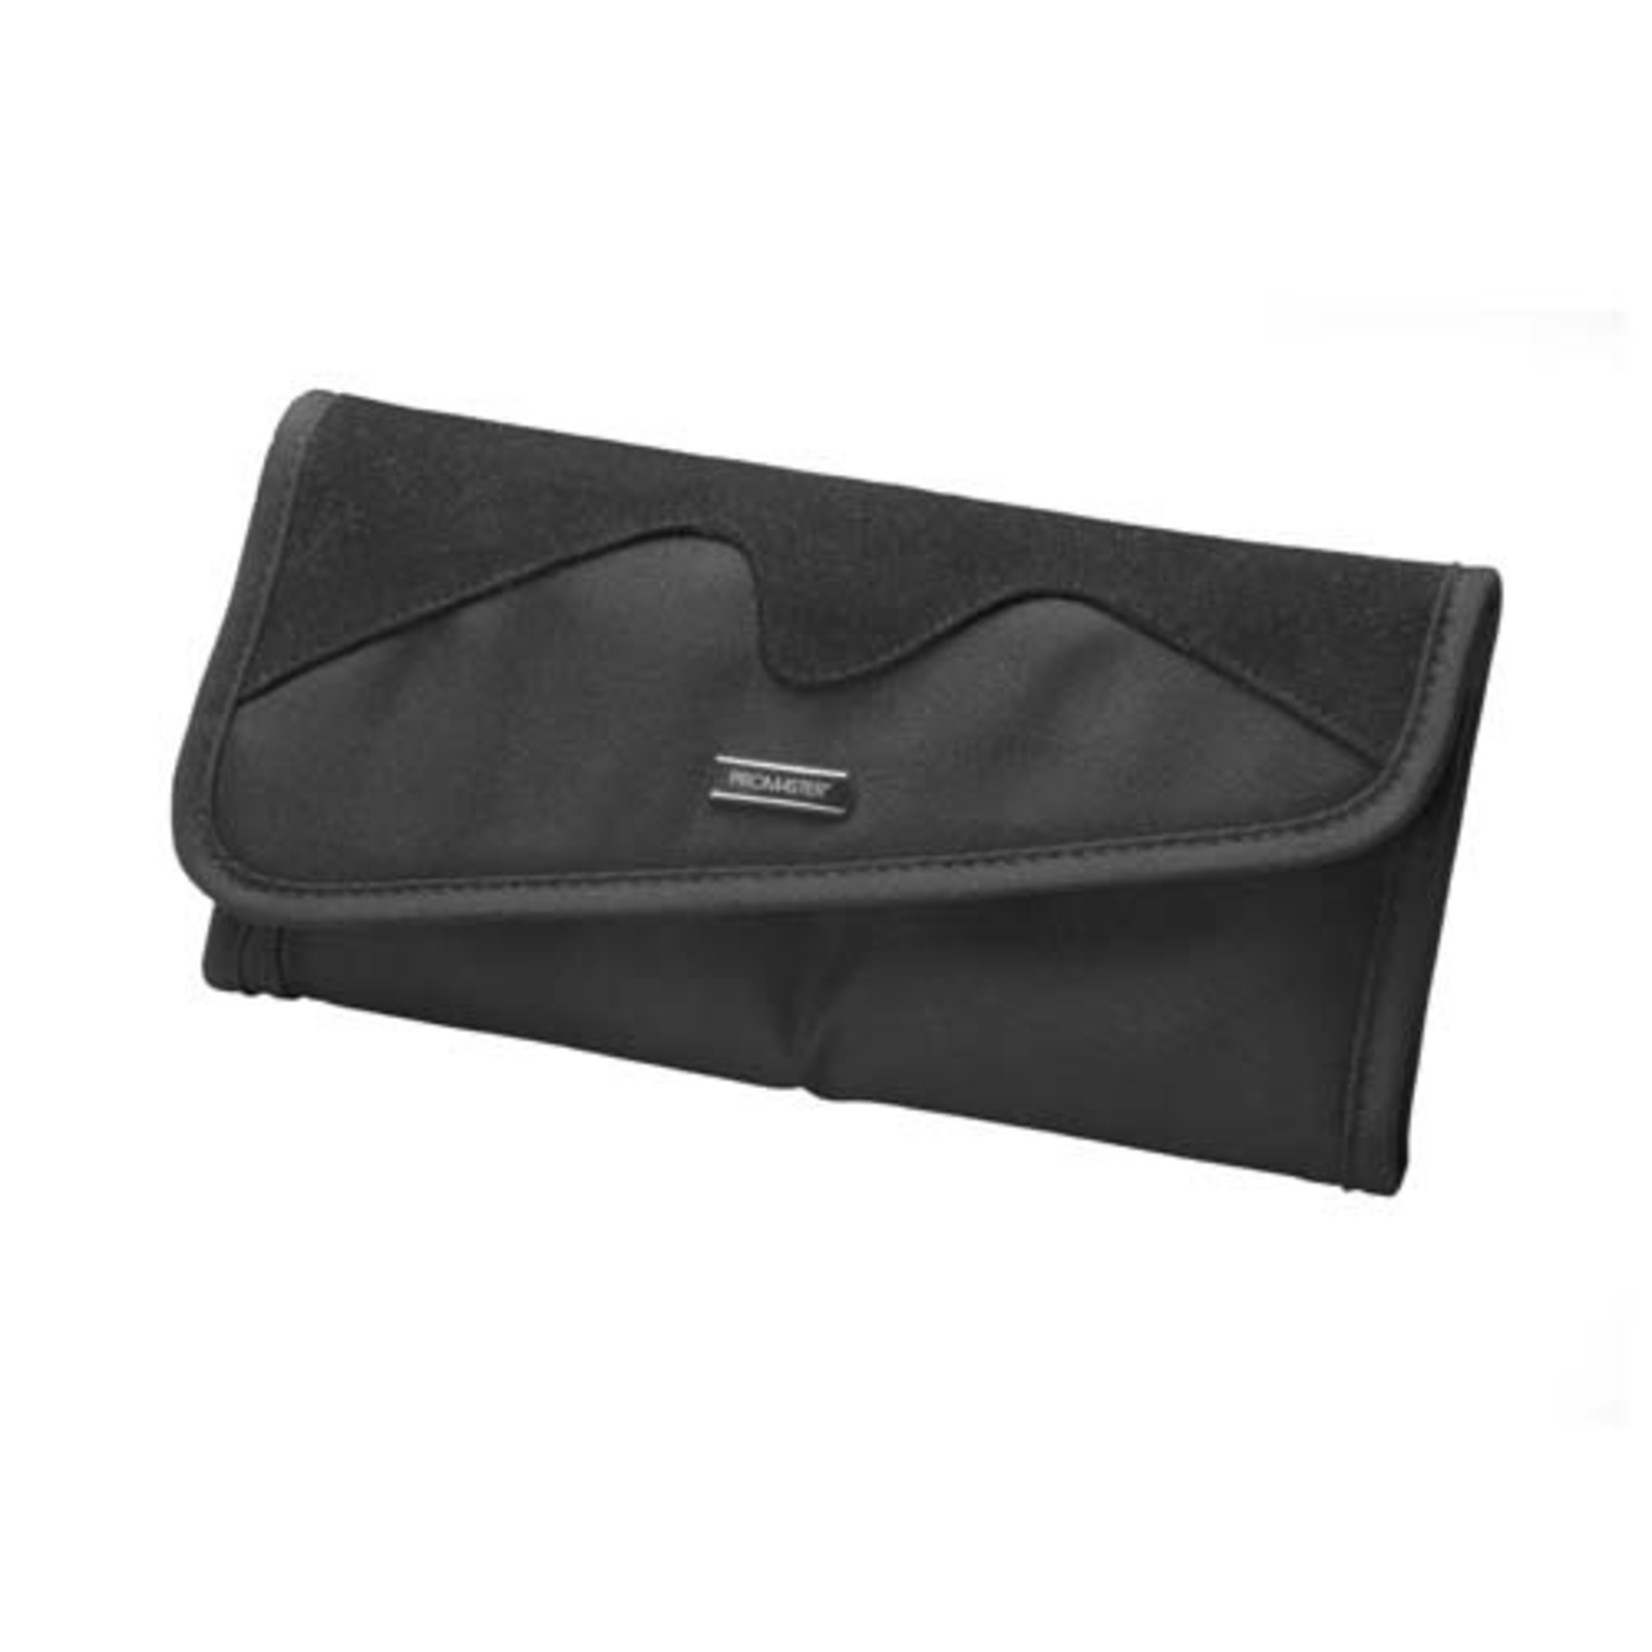 ProMaster Filter Case Holds 6 Filters up to 82mm - Holds 6 filters up to 82mm